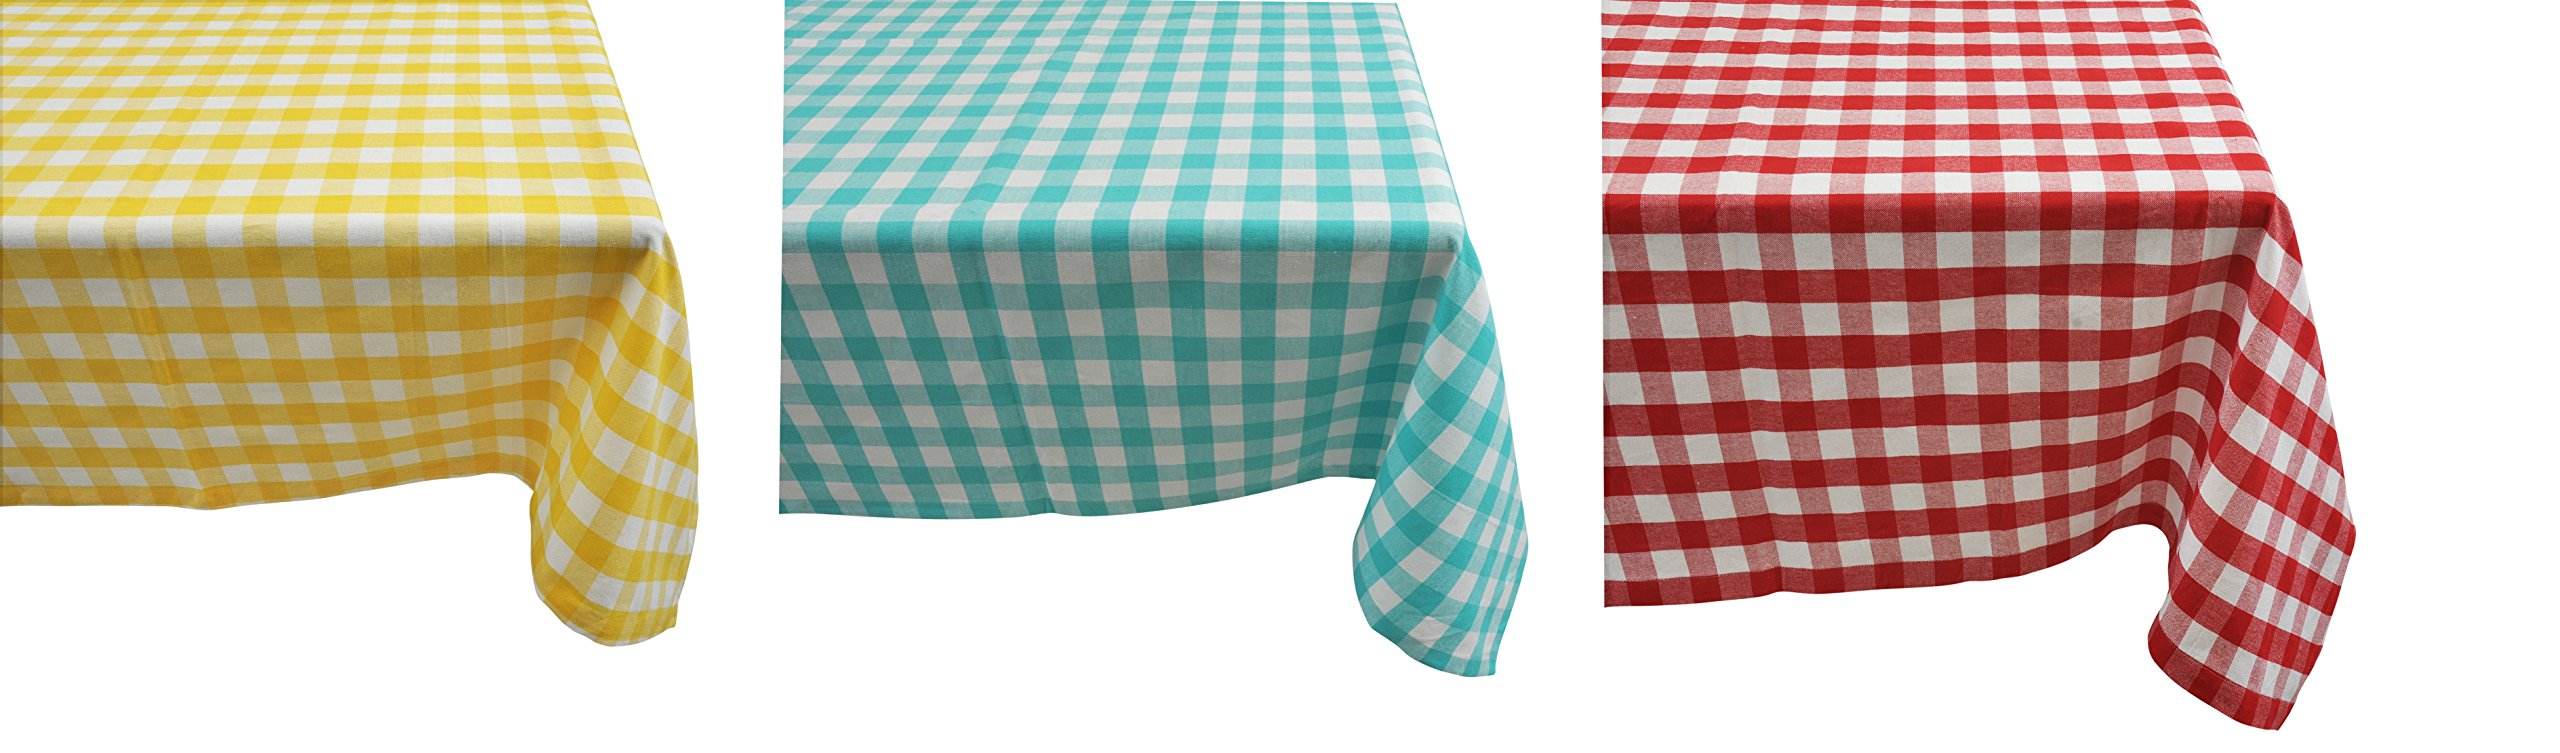 Yourtablecloth 100% Cotton Checkered Buffalo Plaid Tablecloth –for Home, Restaurants, Cafés – Be it for Everyday Dinner Picnic or Occasions like Thanksgiving 60 x 104 Rectangle/Oblong Red and White by Yourtablecloth (Image #3)